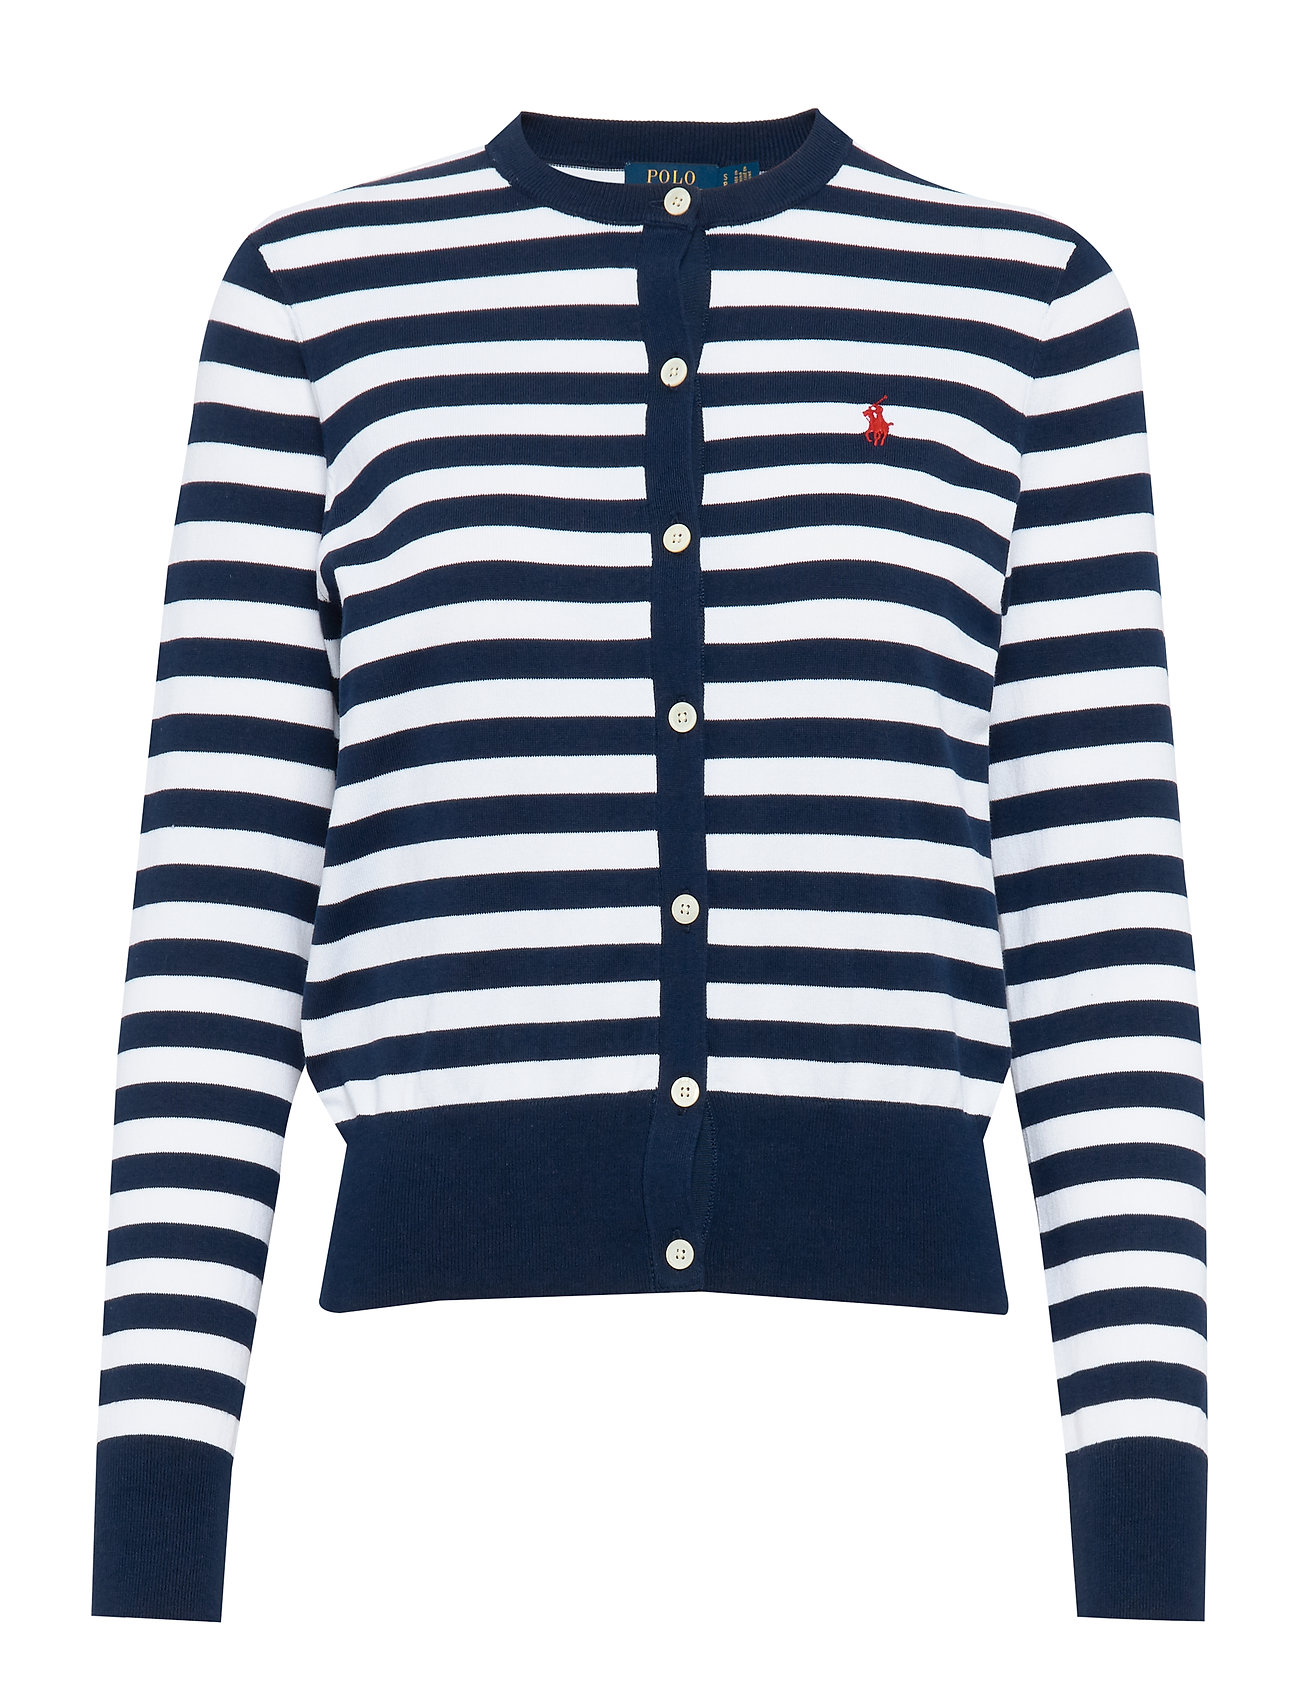 Polo Ralph Lauren Striped Cotton Cardigan - BRIGHT NAVY/WHITE